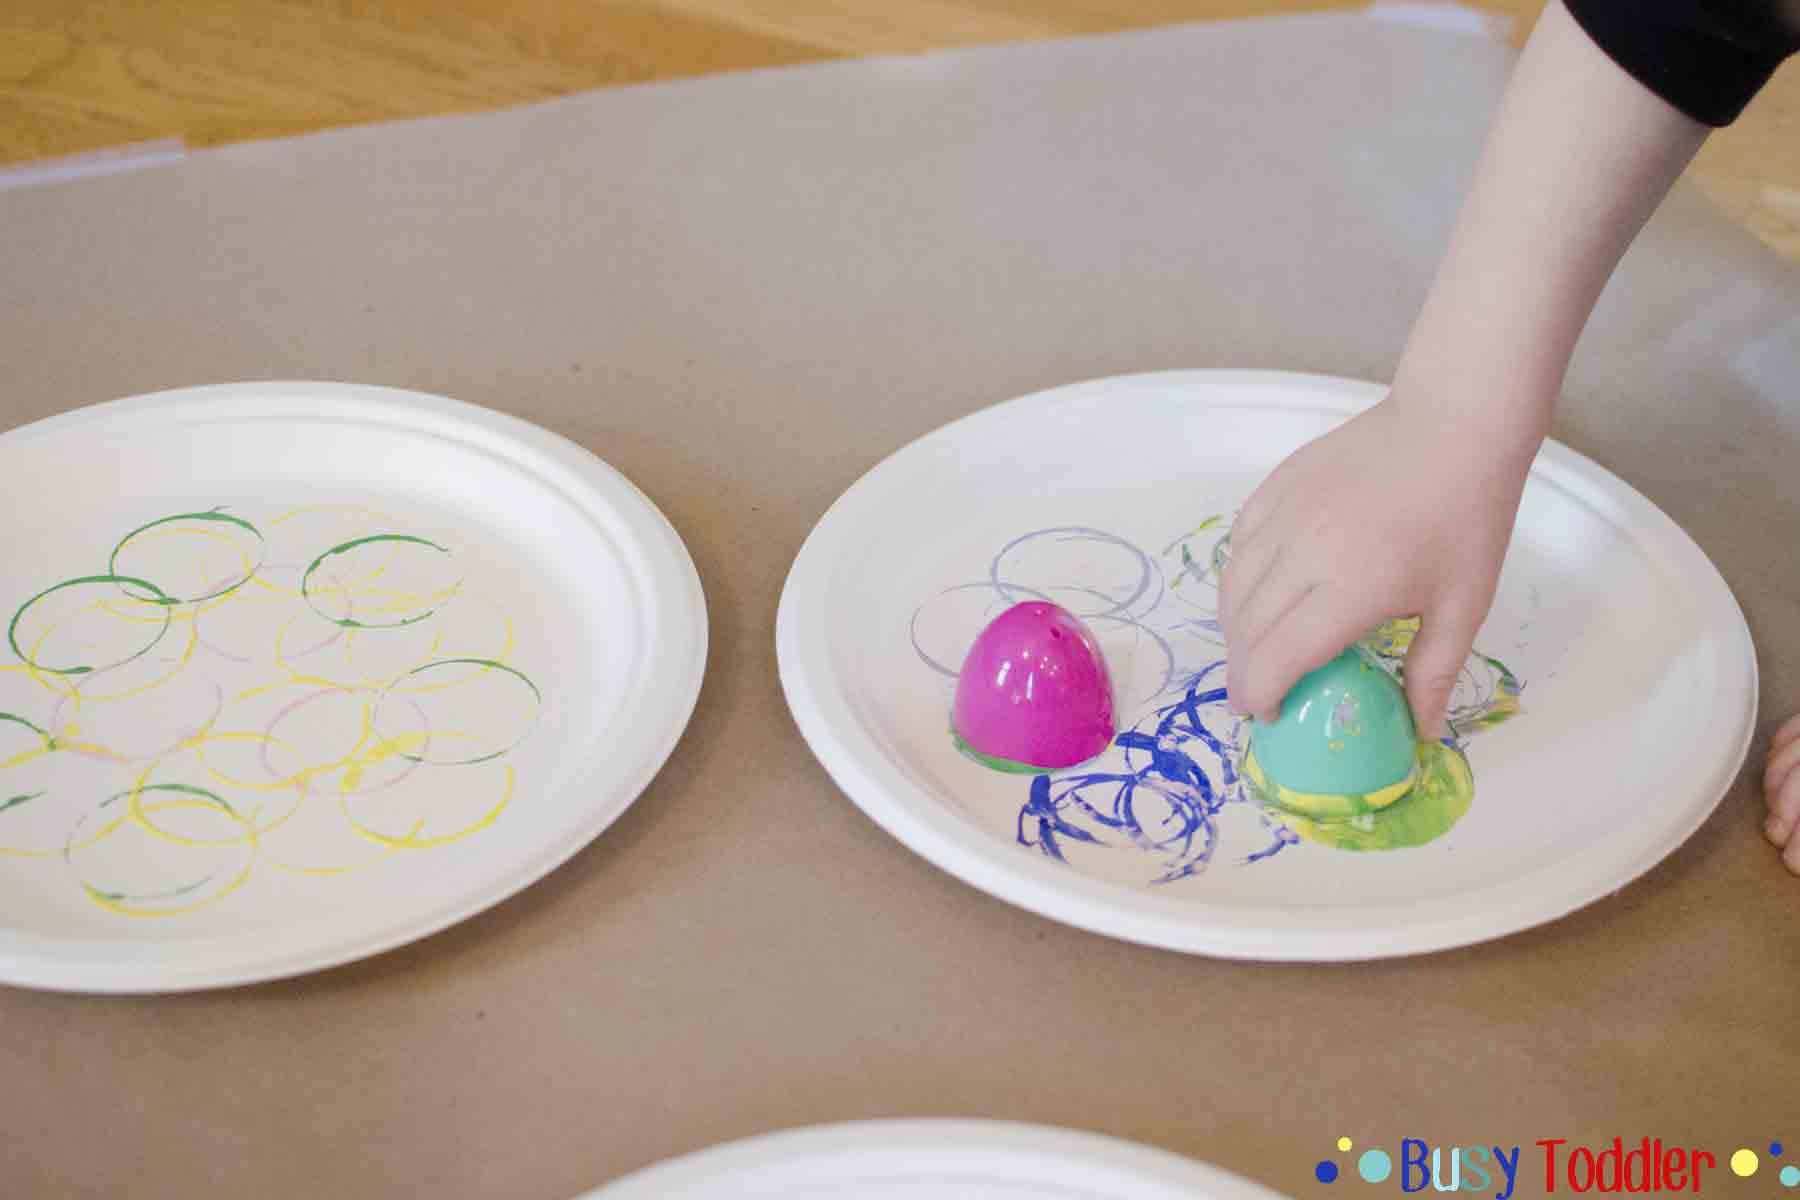 EASTER EGG STAMP ART: An easy toddler activity stamping Easter Egg circles. Turn this cute stamp art into toddler-made place cards for Easter dinner.